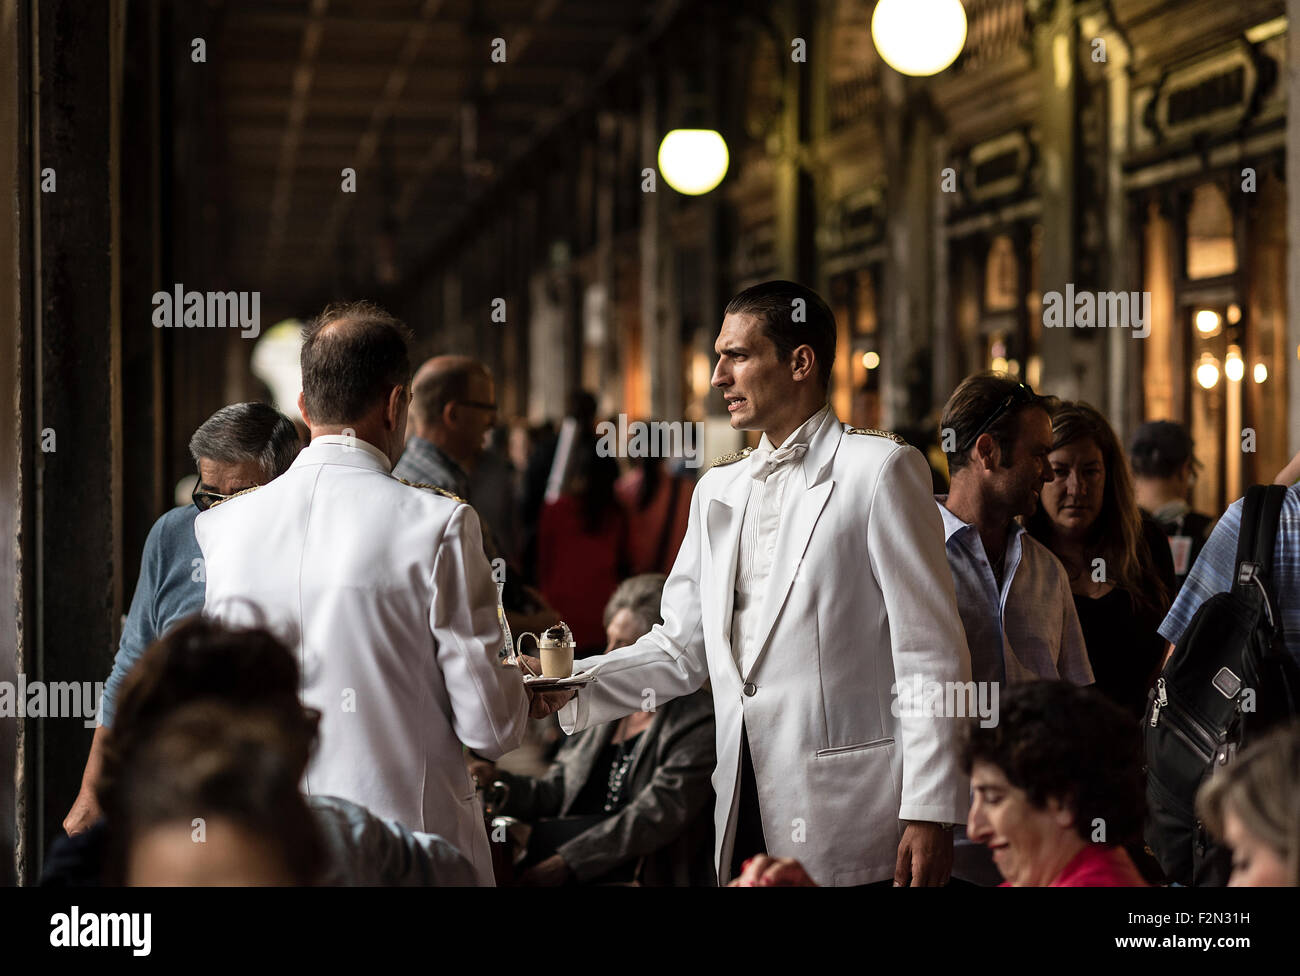 Florian Café, Place Saint Marc, San Marco, Venise, Italie, Europe Photo Stock